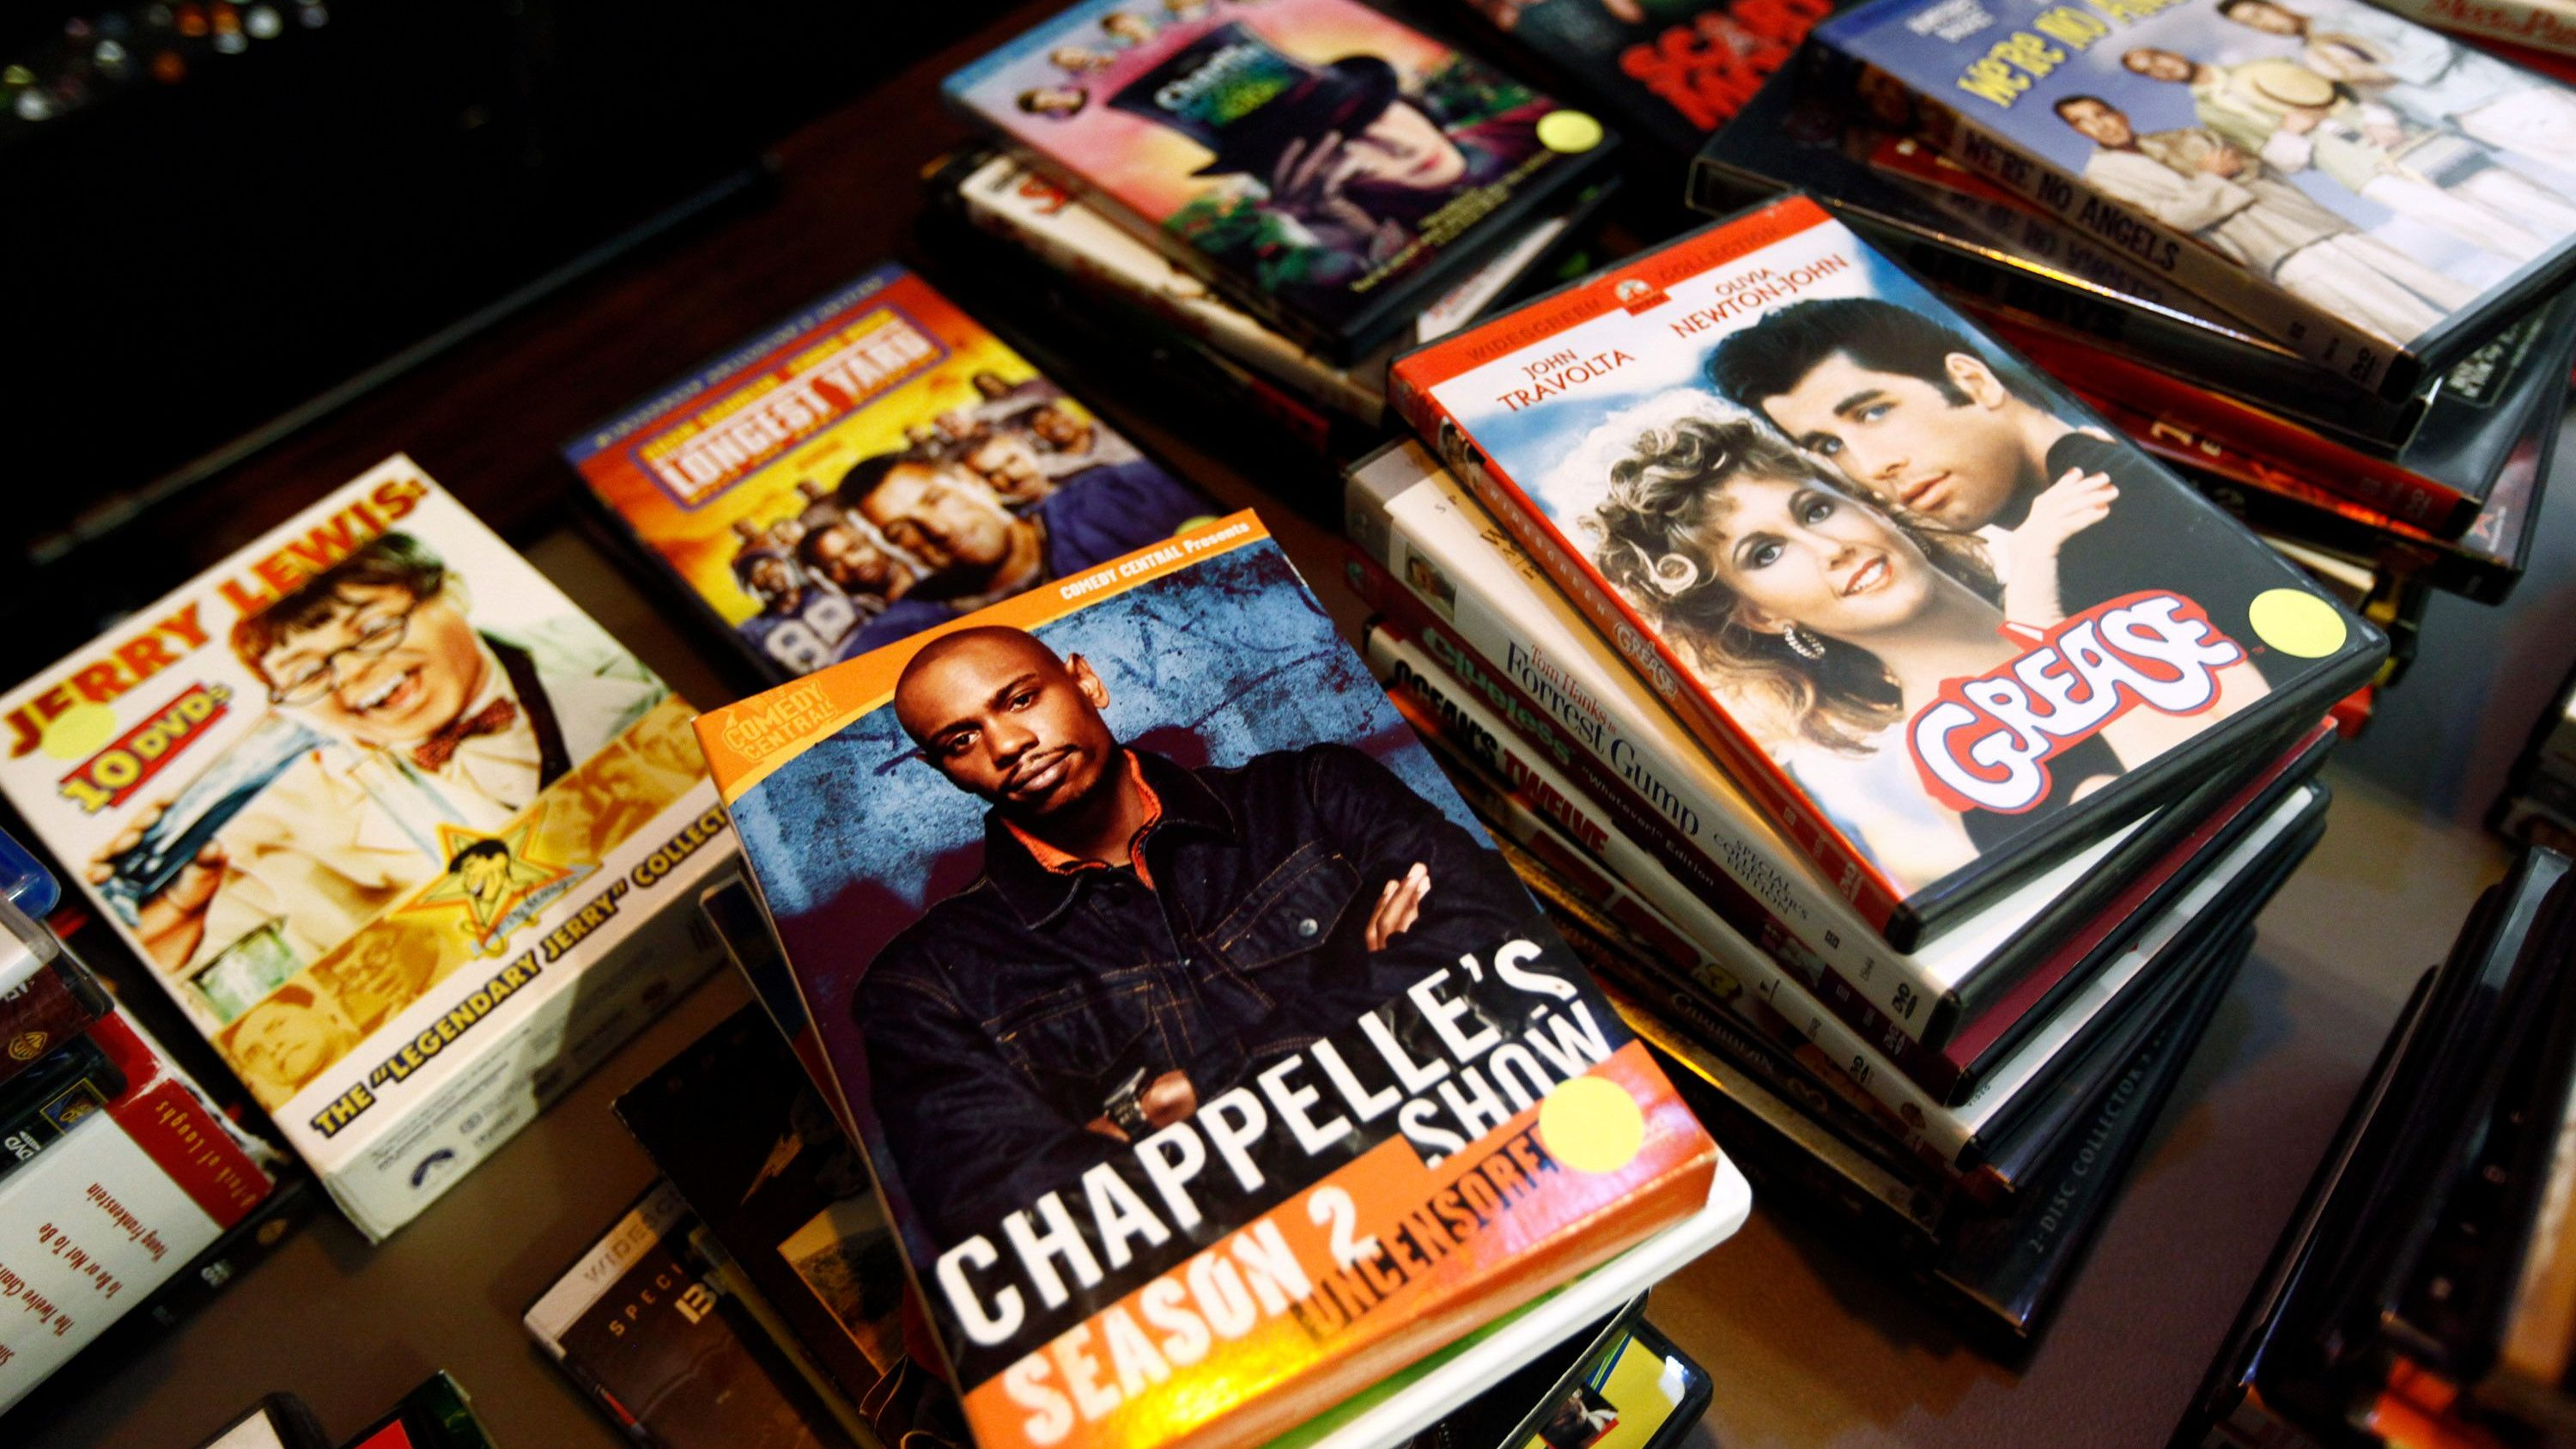 Netflix won't always be there to stream your favorite TV reruns. Your DVDs will